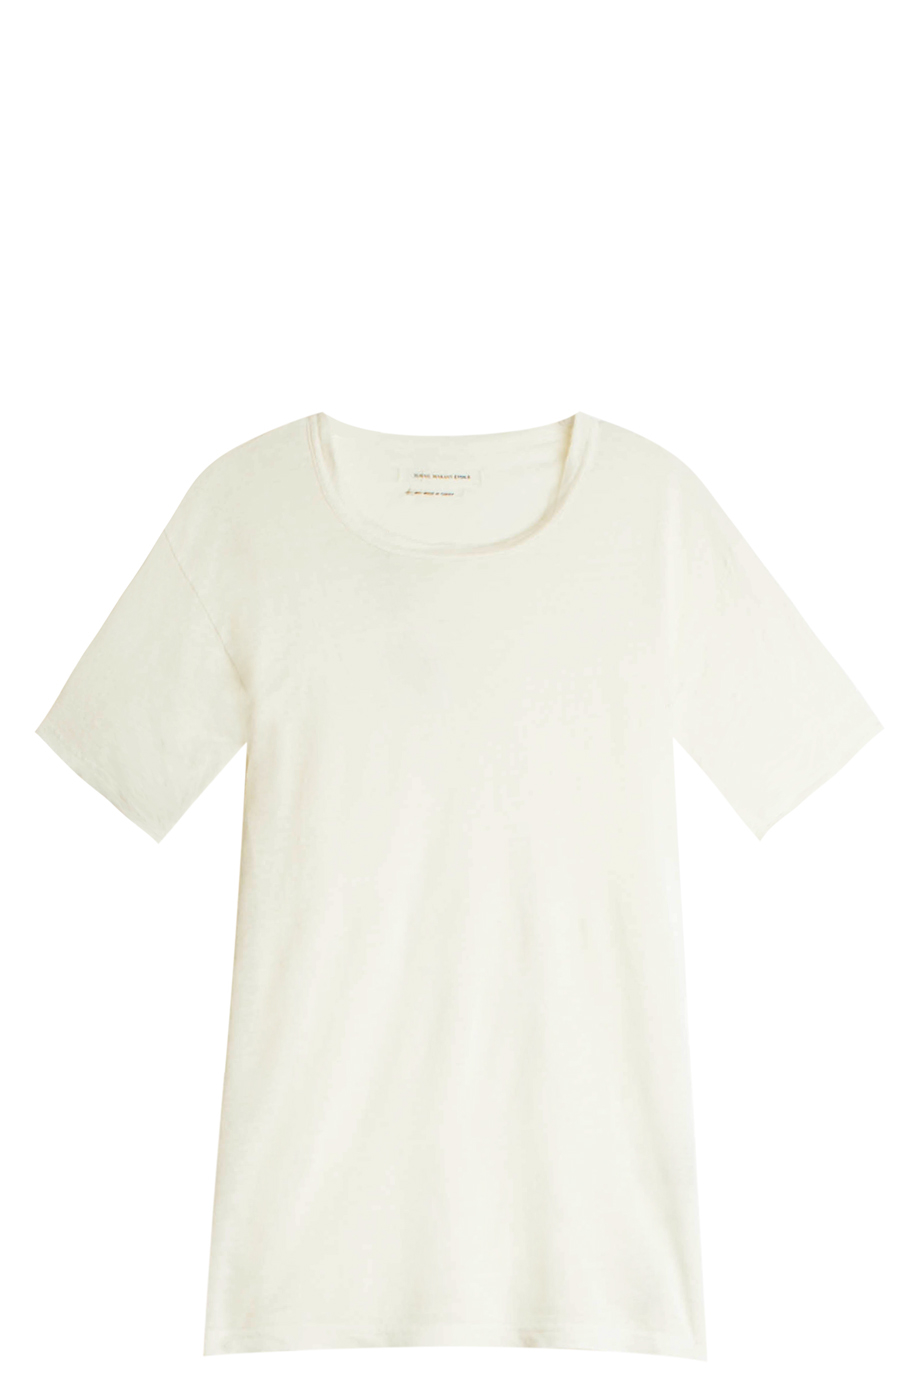 Toile Isabel Marant Keiran T Shirt In Multicolor White